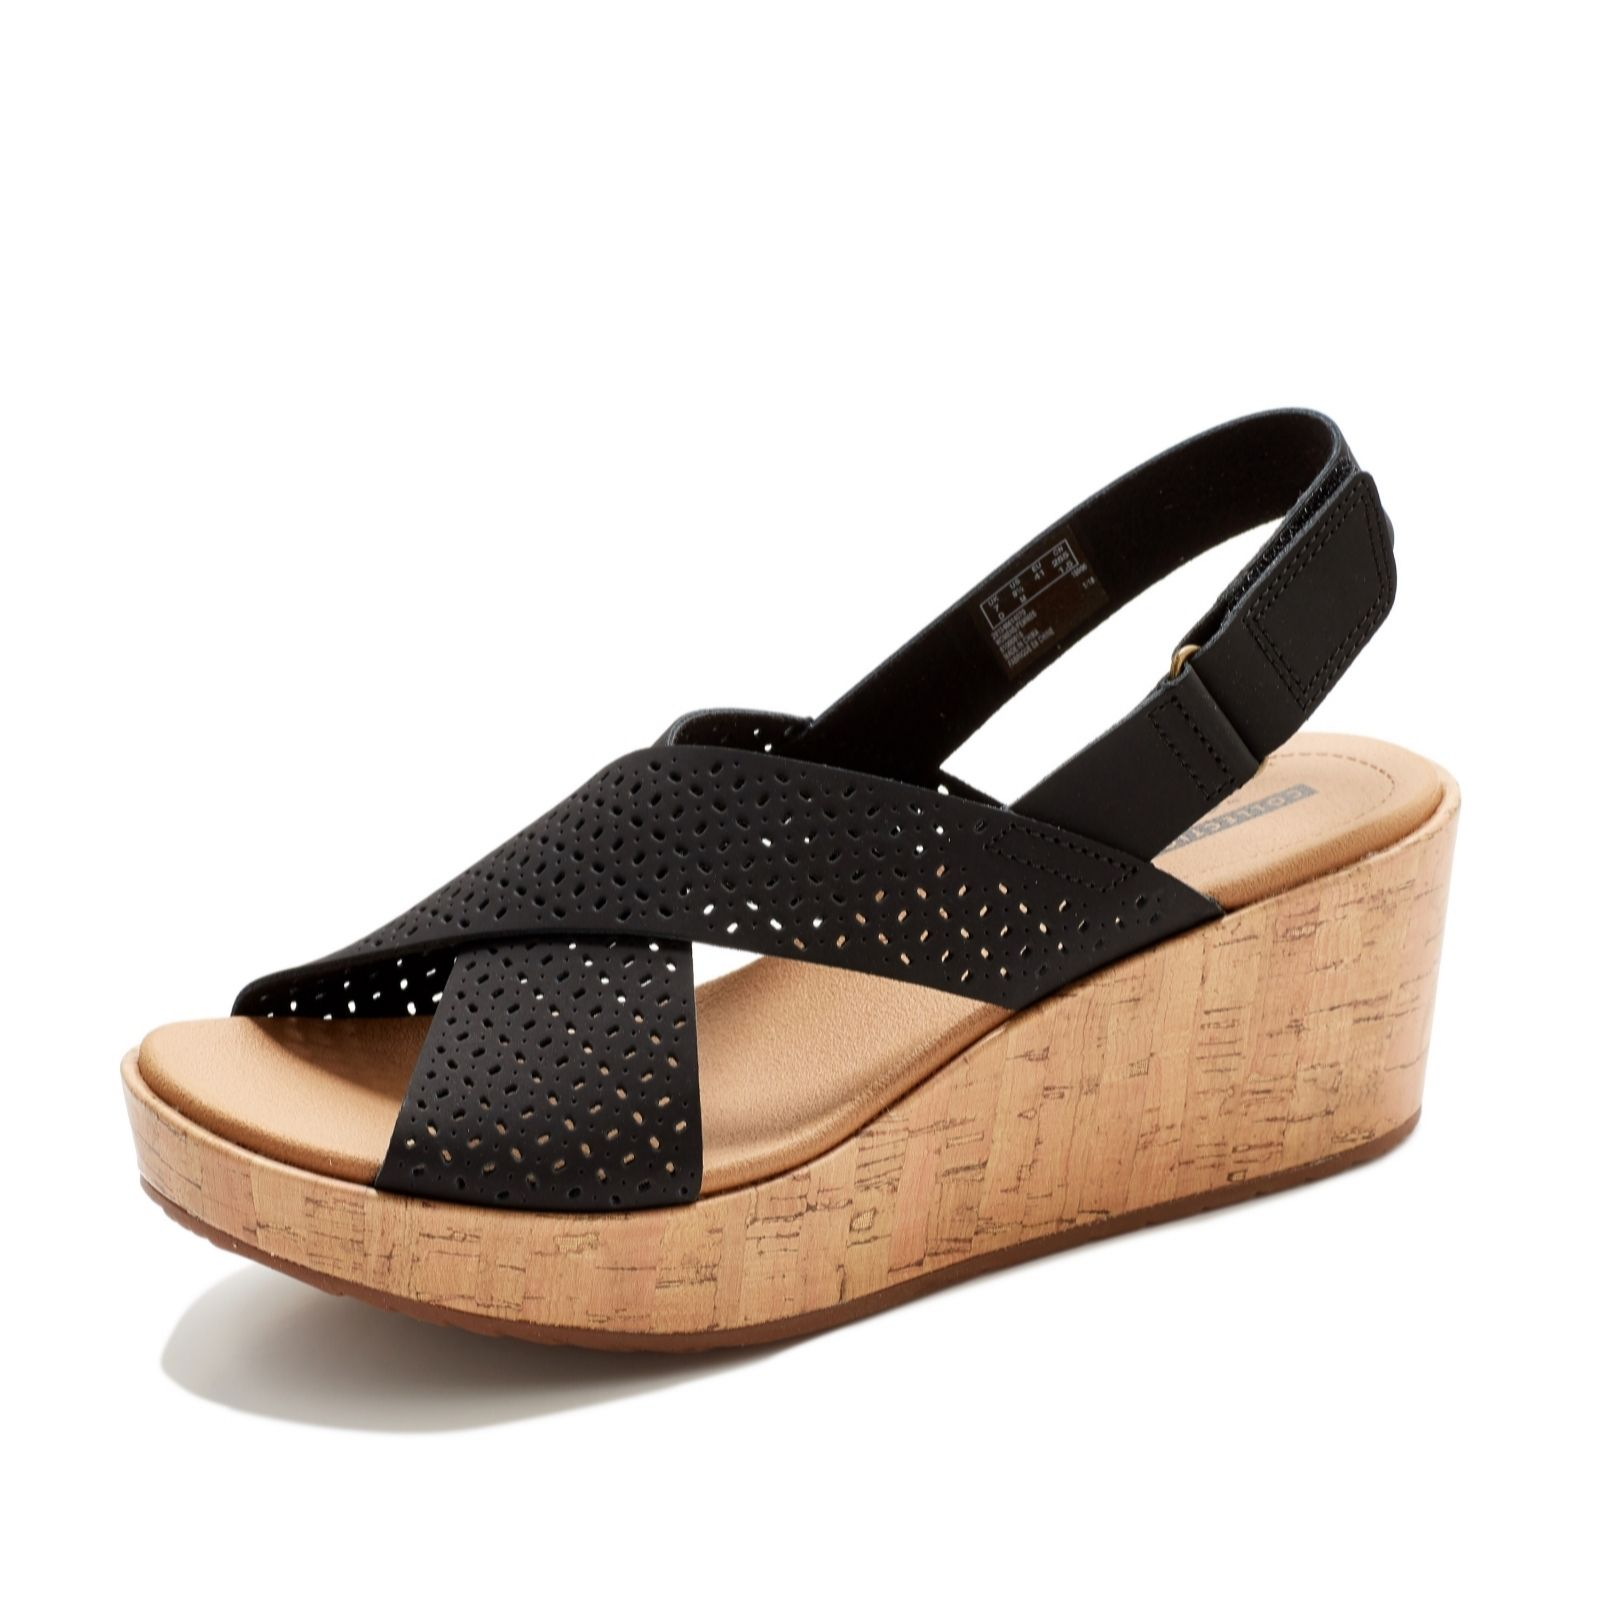 3c7295e13744 Clarks Laser Cut Leather Wedge Sandal Wide Fit - QVC UK